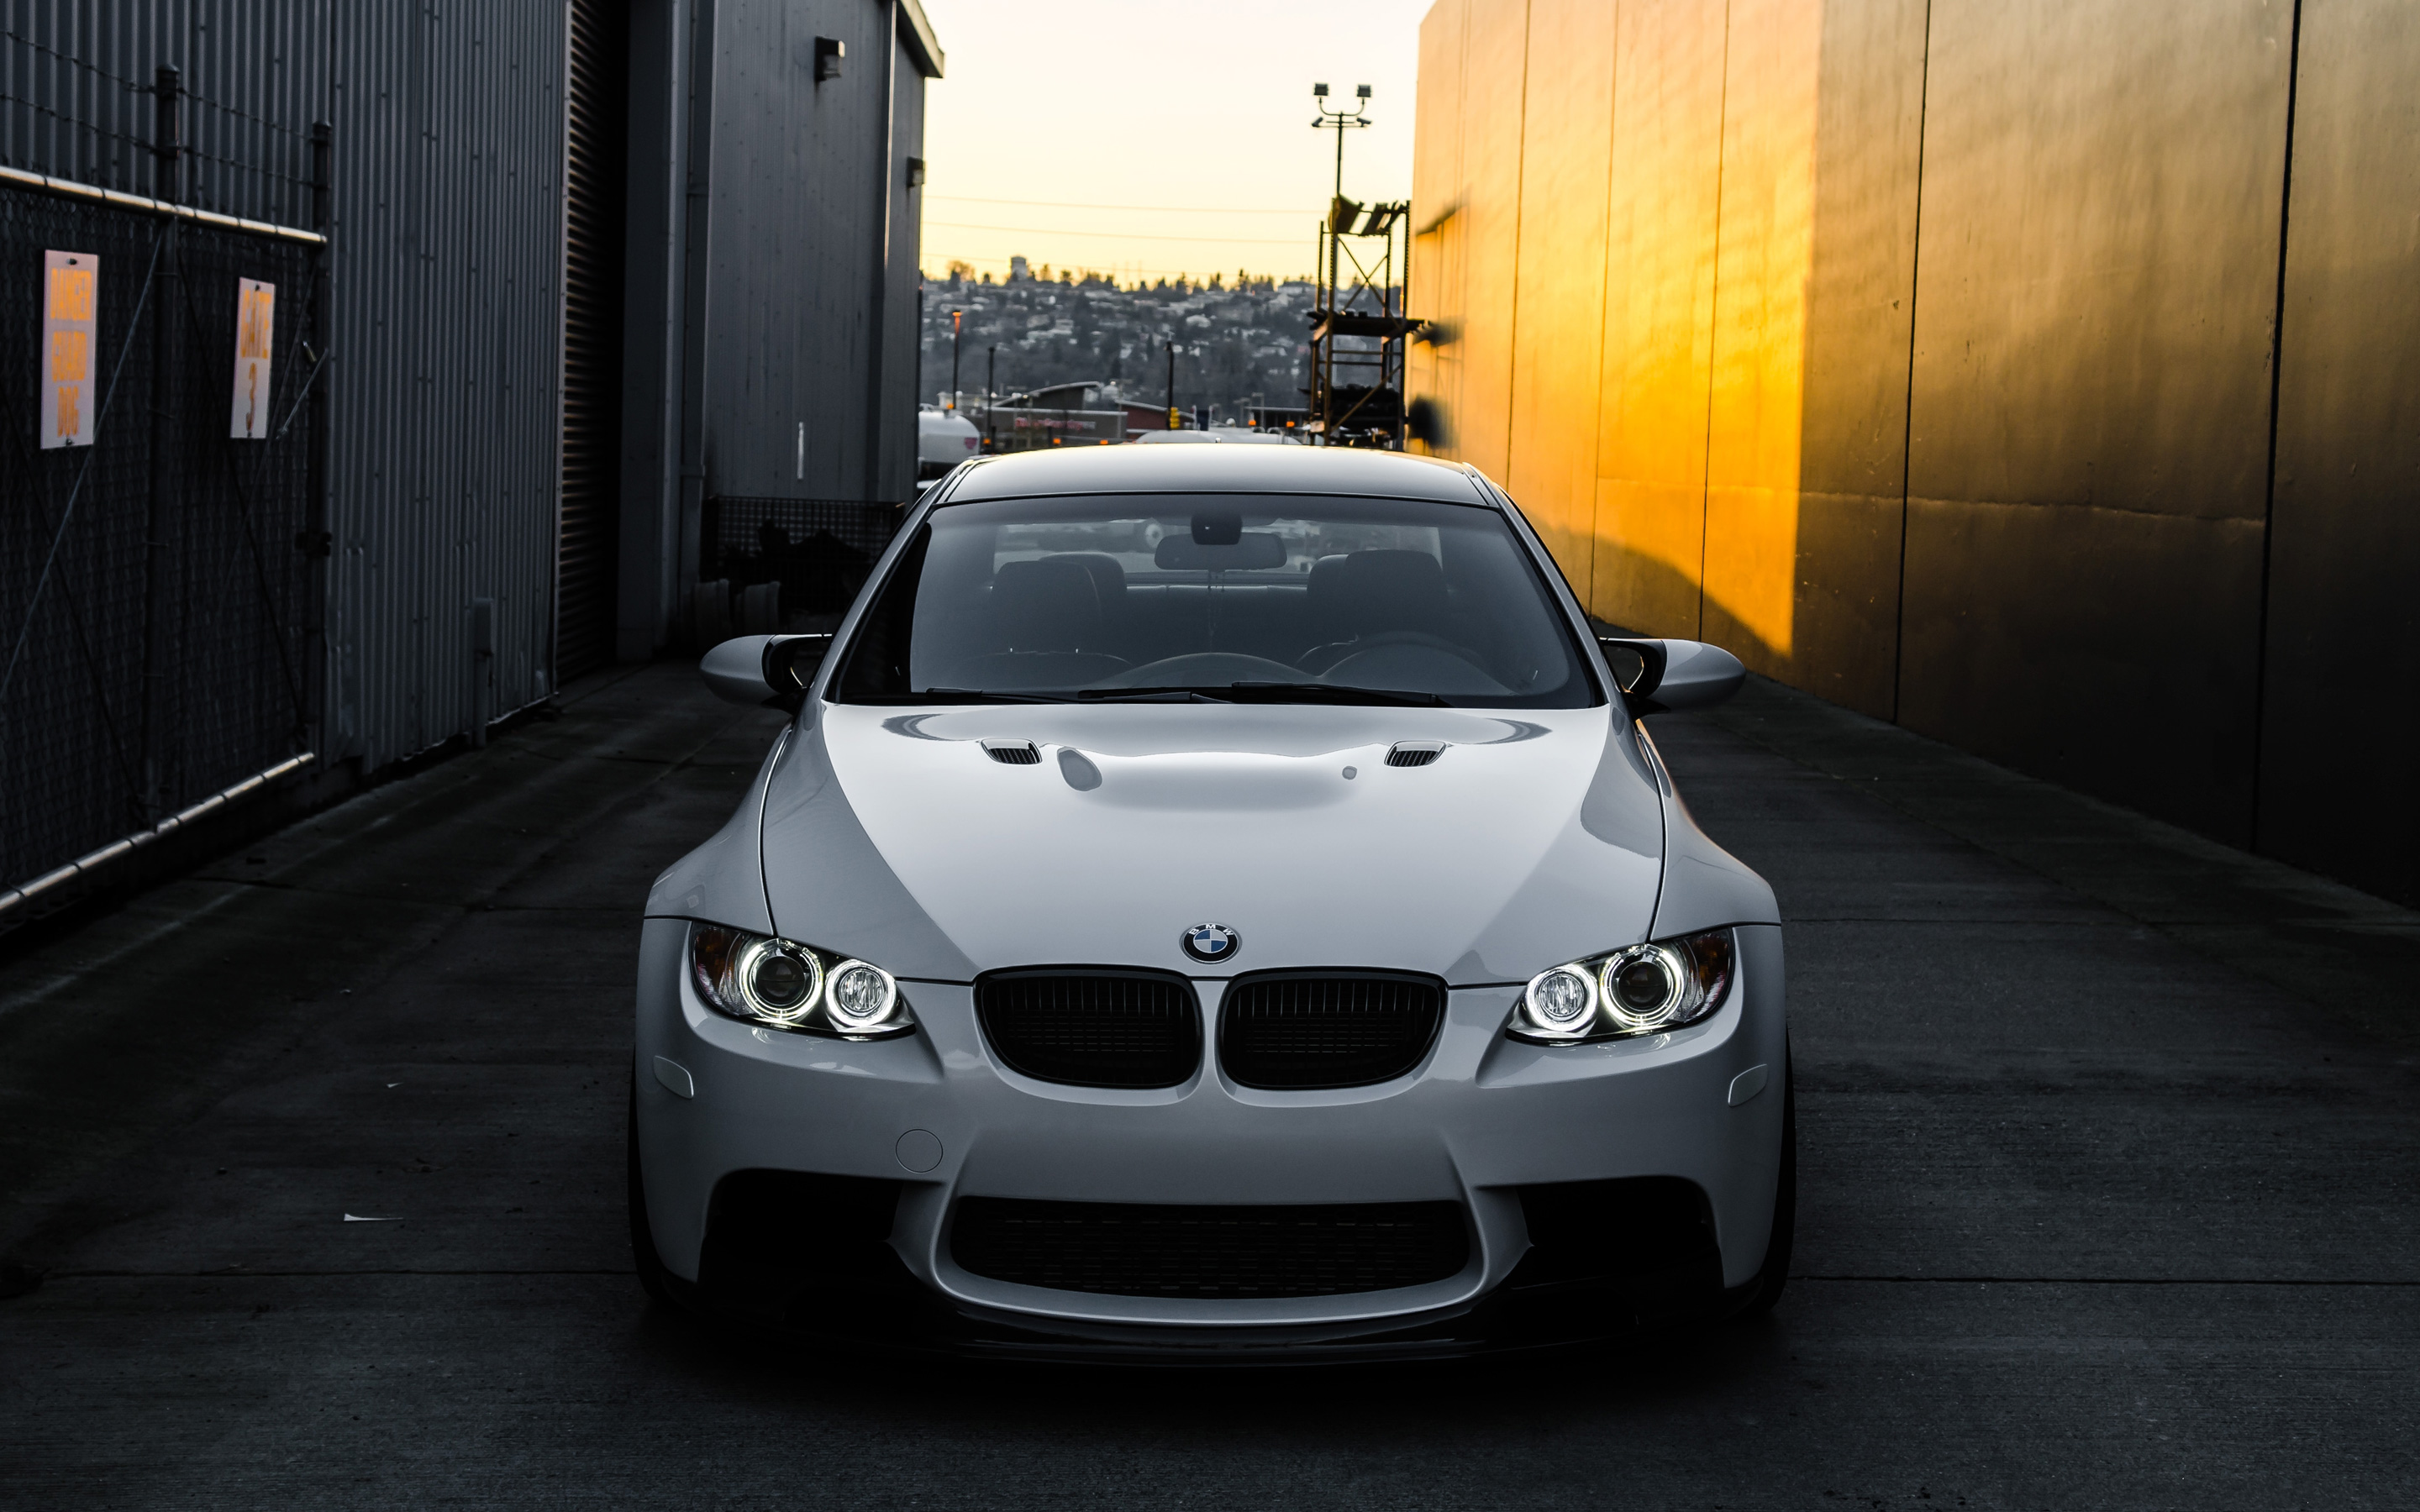 image Hd Bmw M3 Wallpaper PC Android iPhone and iPad Wallpapers 2880x1800